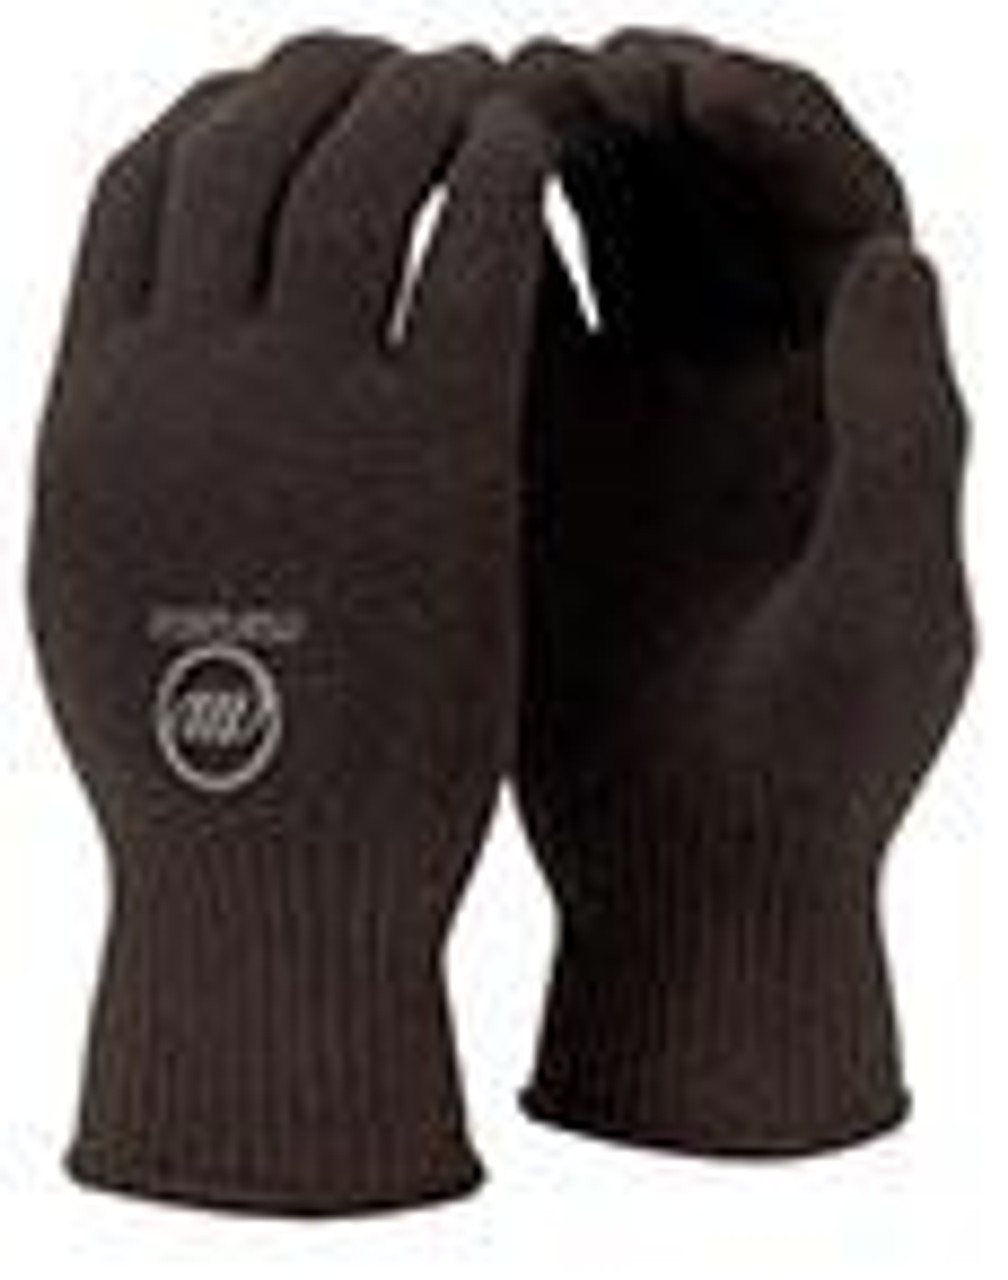 Manzella Black Knit Referee Gloves with Control Dot